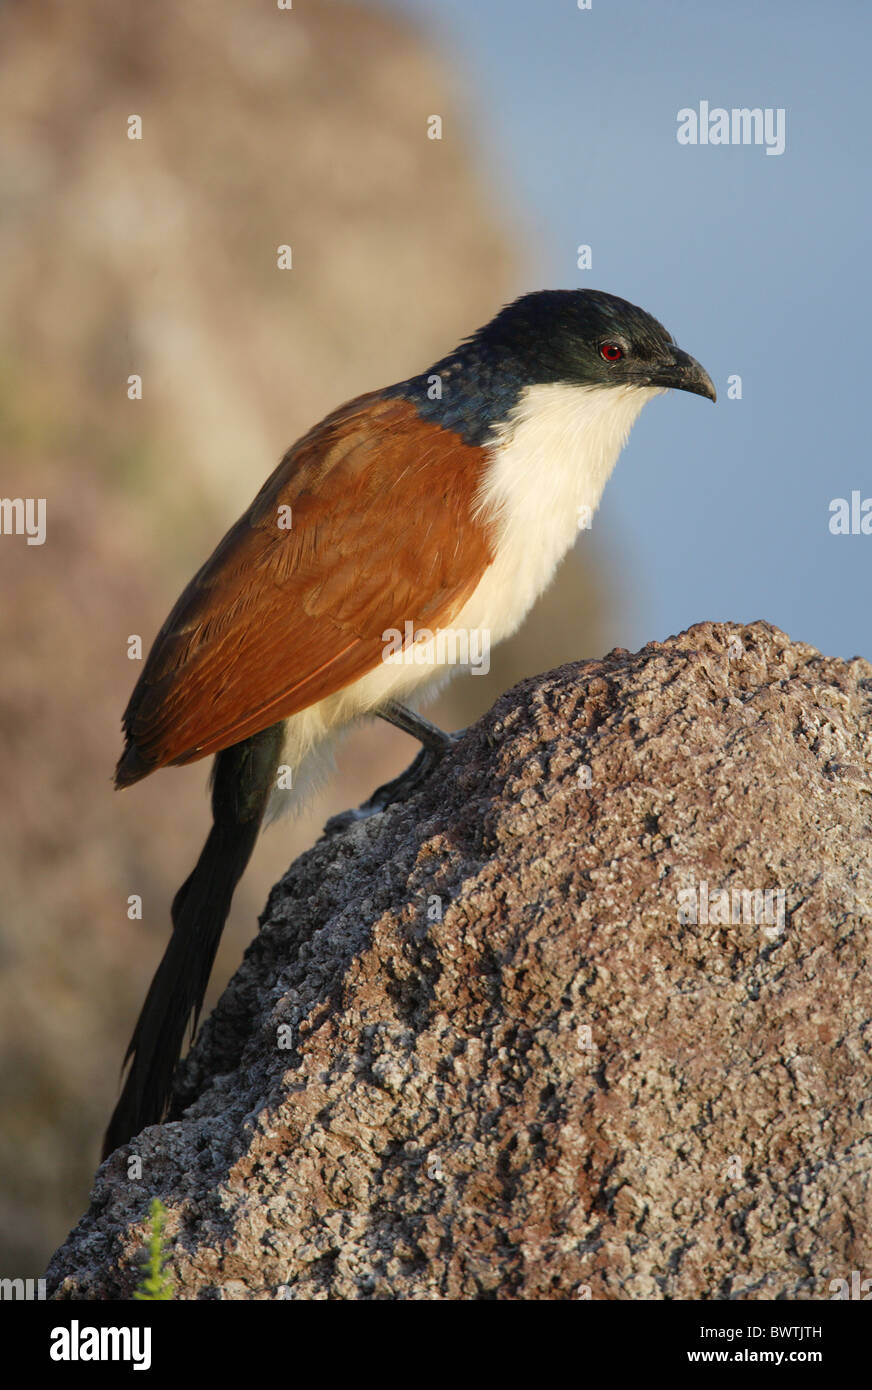 Blue-headed Coucal (Centropus monachus) adult, perched on rock, Ethiopia, april - Stock Image